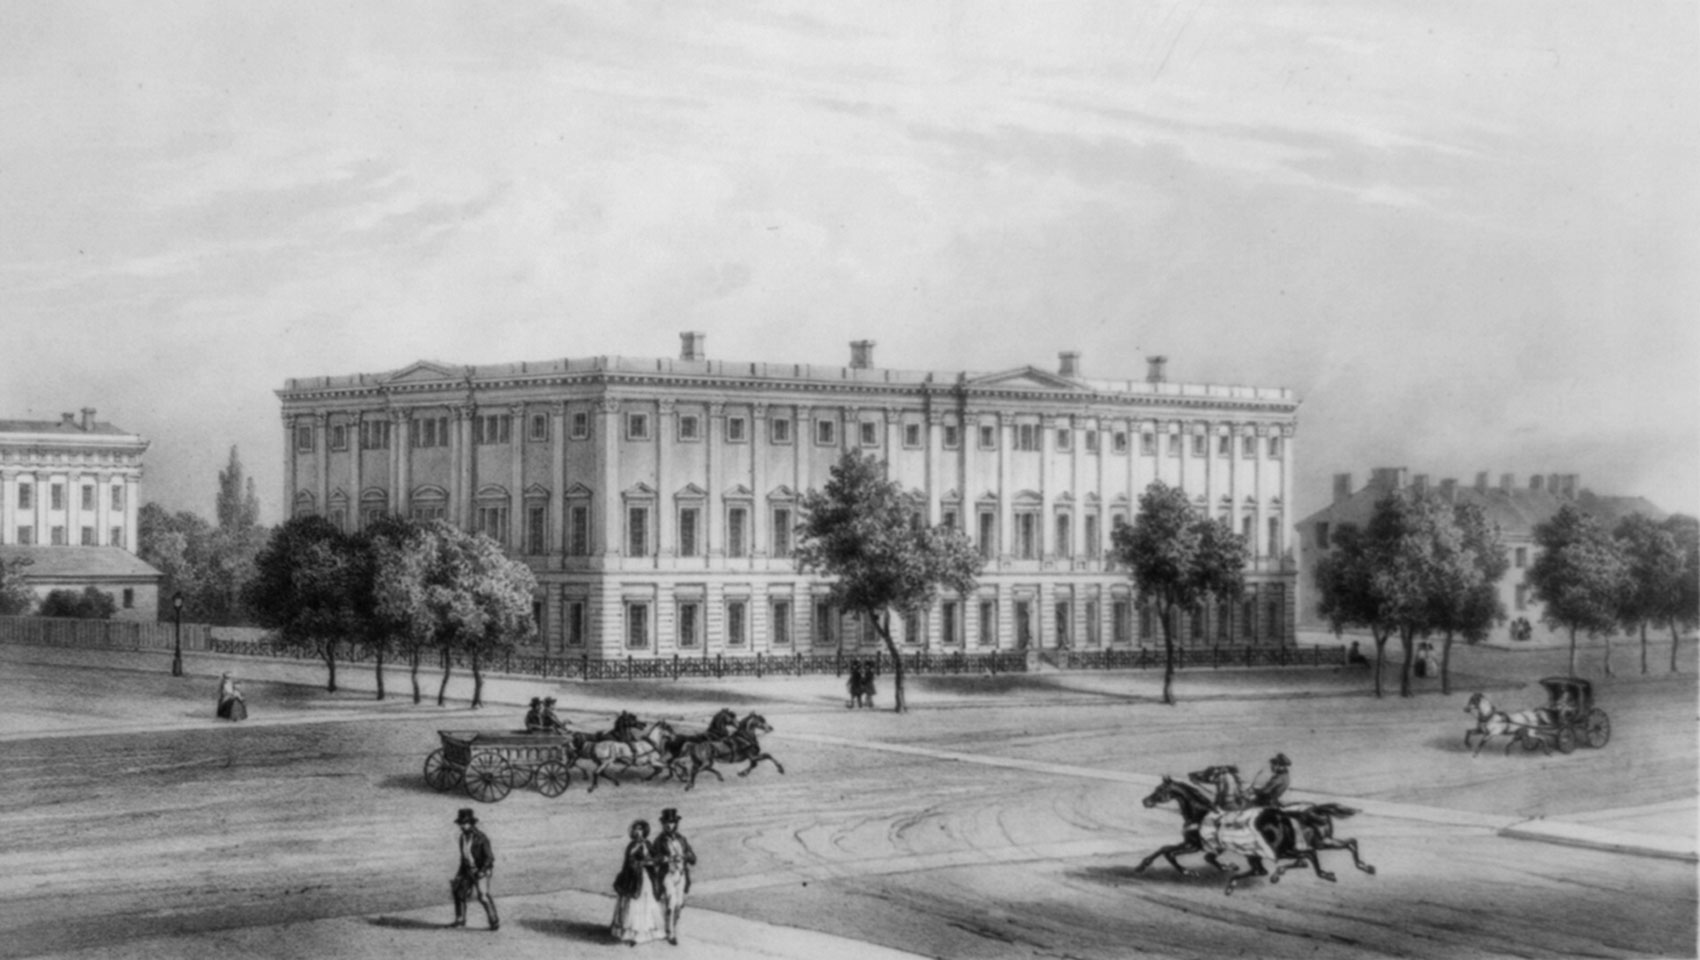 1850 engraving of Washington DC's General Post Office